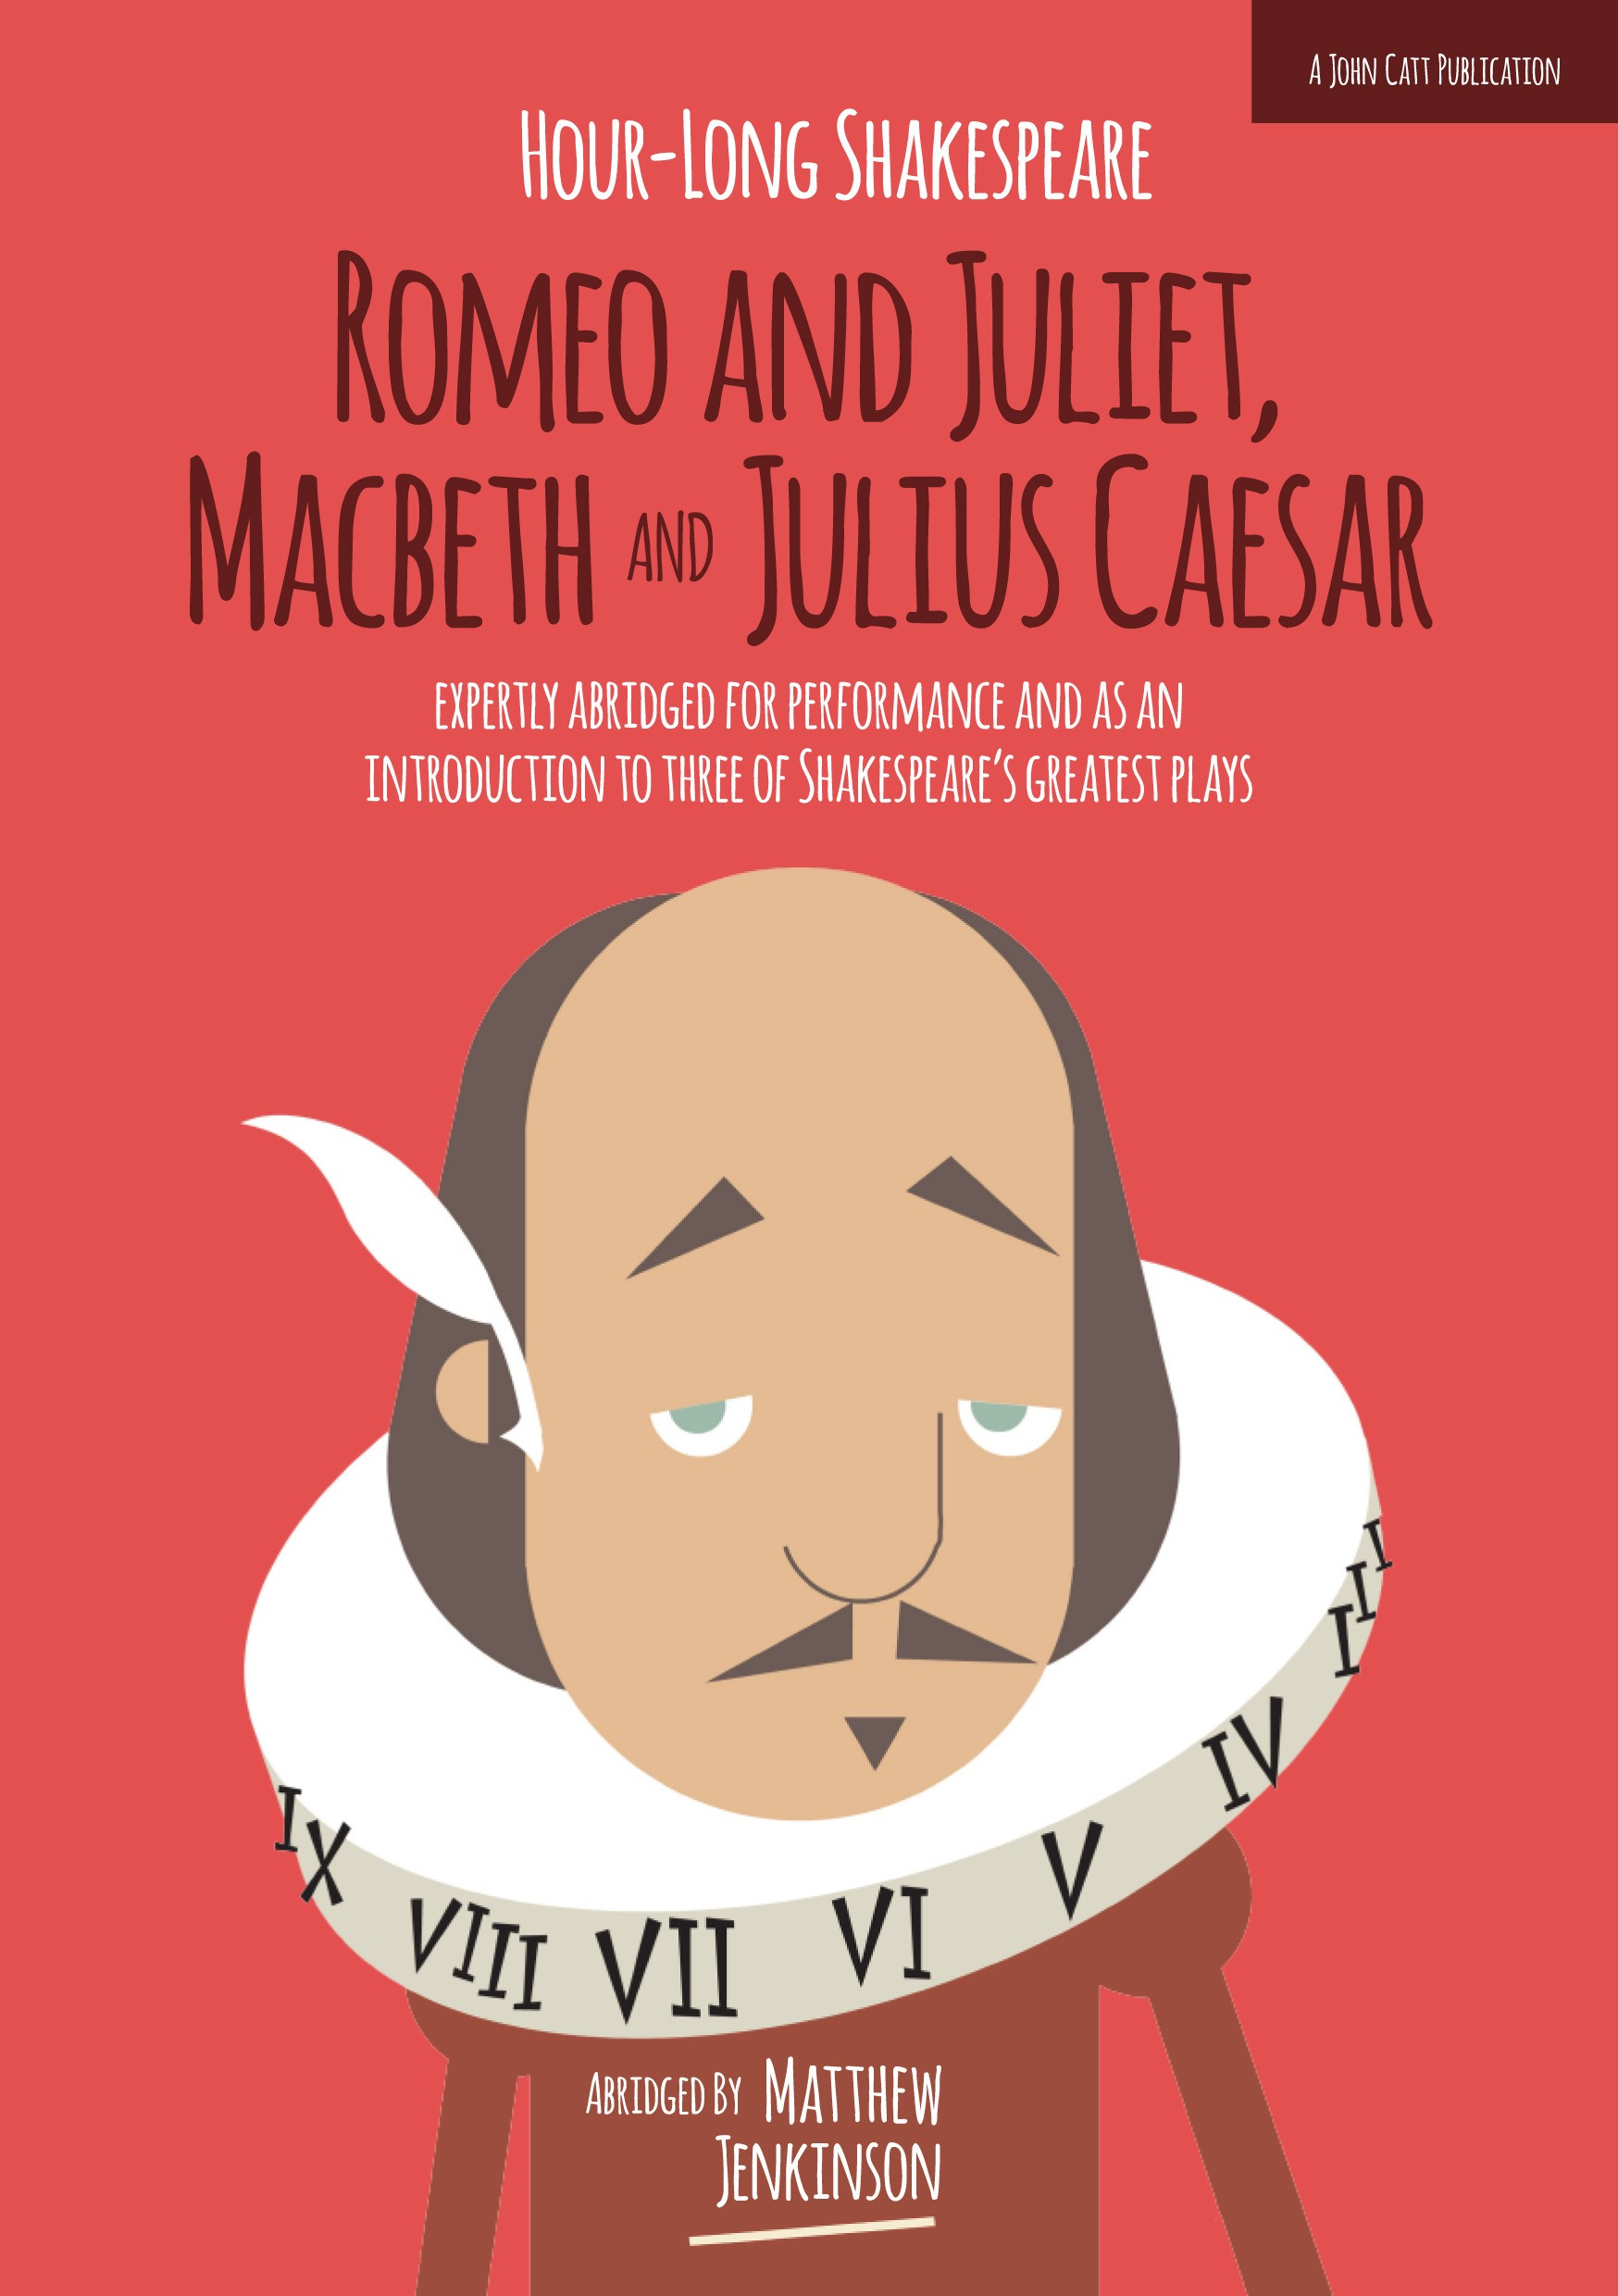 an analysis of romeo and juliet as one of shakespeares plays about tragedy Romeo and juliet study guide a tragedy, it has endured as one of shakespeare's most renowned provide critical analysis of romeo and juliet by.